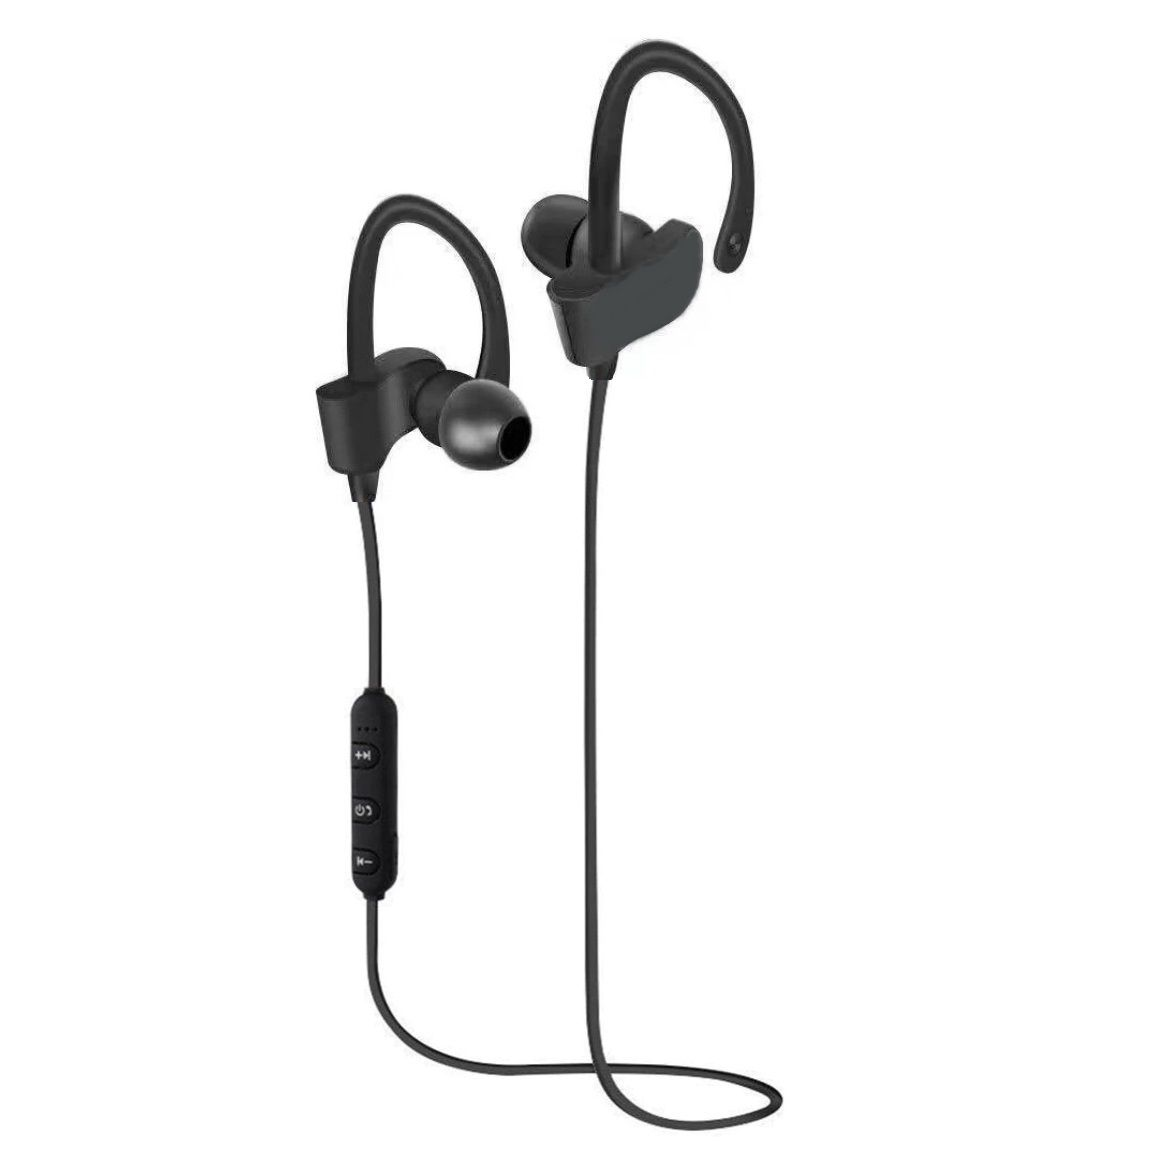 HB-QC10x NeckBand Wireless in the ear Behind the Neck - Black